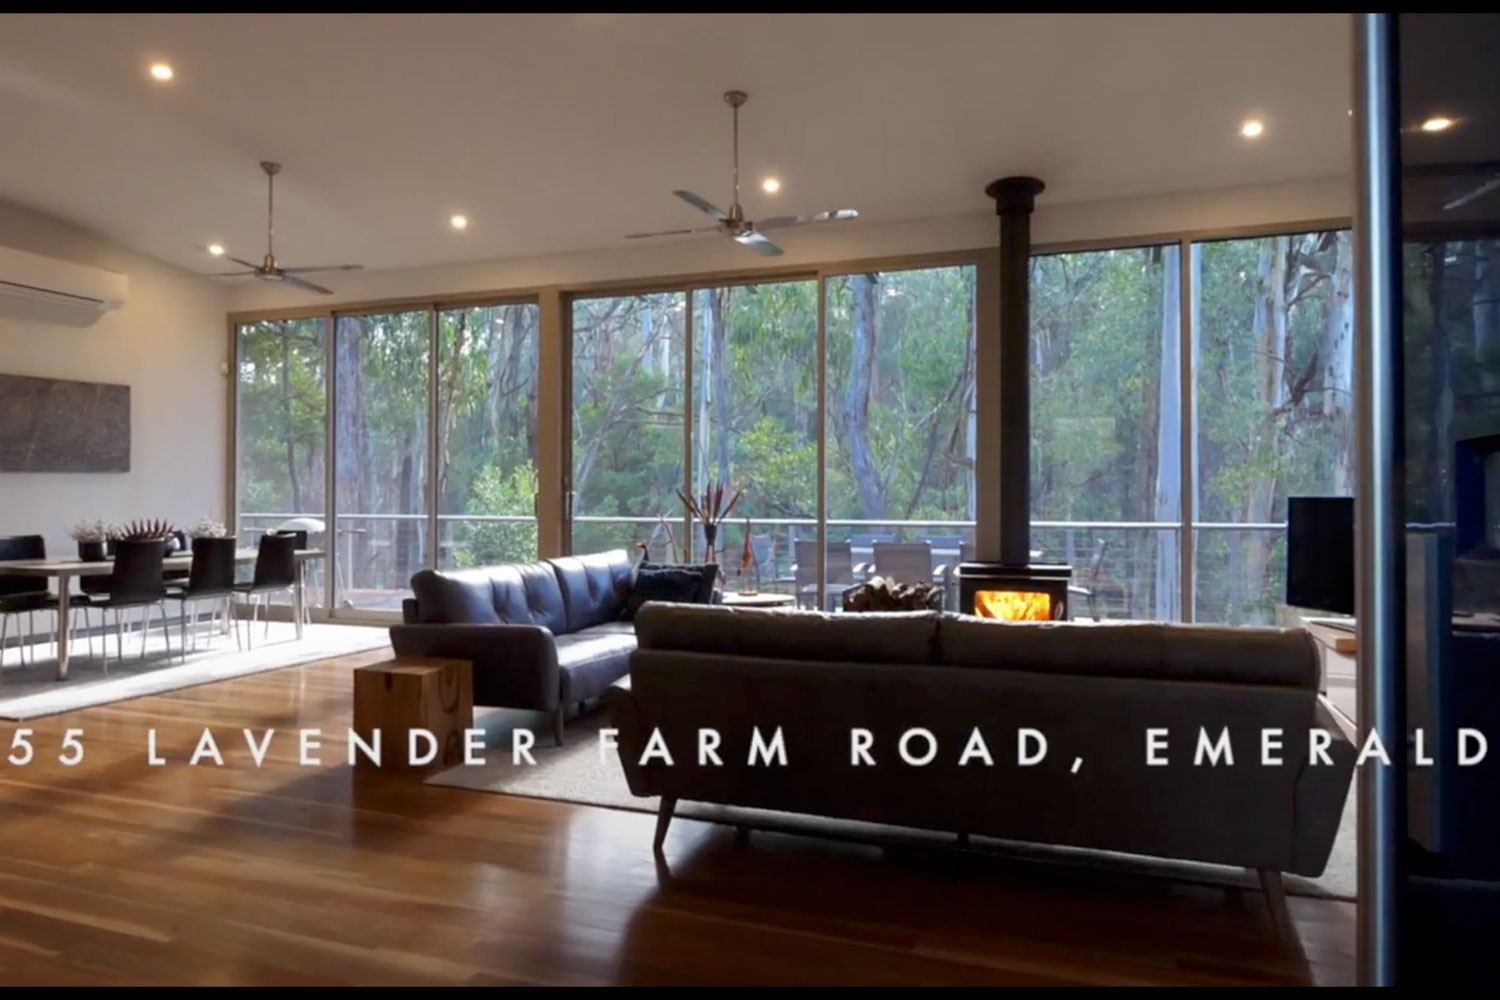 55 Lavender Farm Road Emerald KAYE CHARLES REAL ESTATE